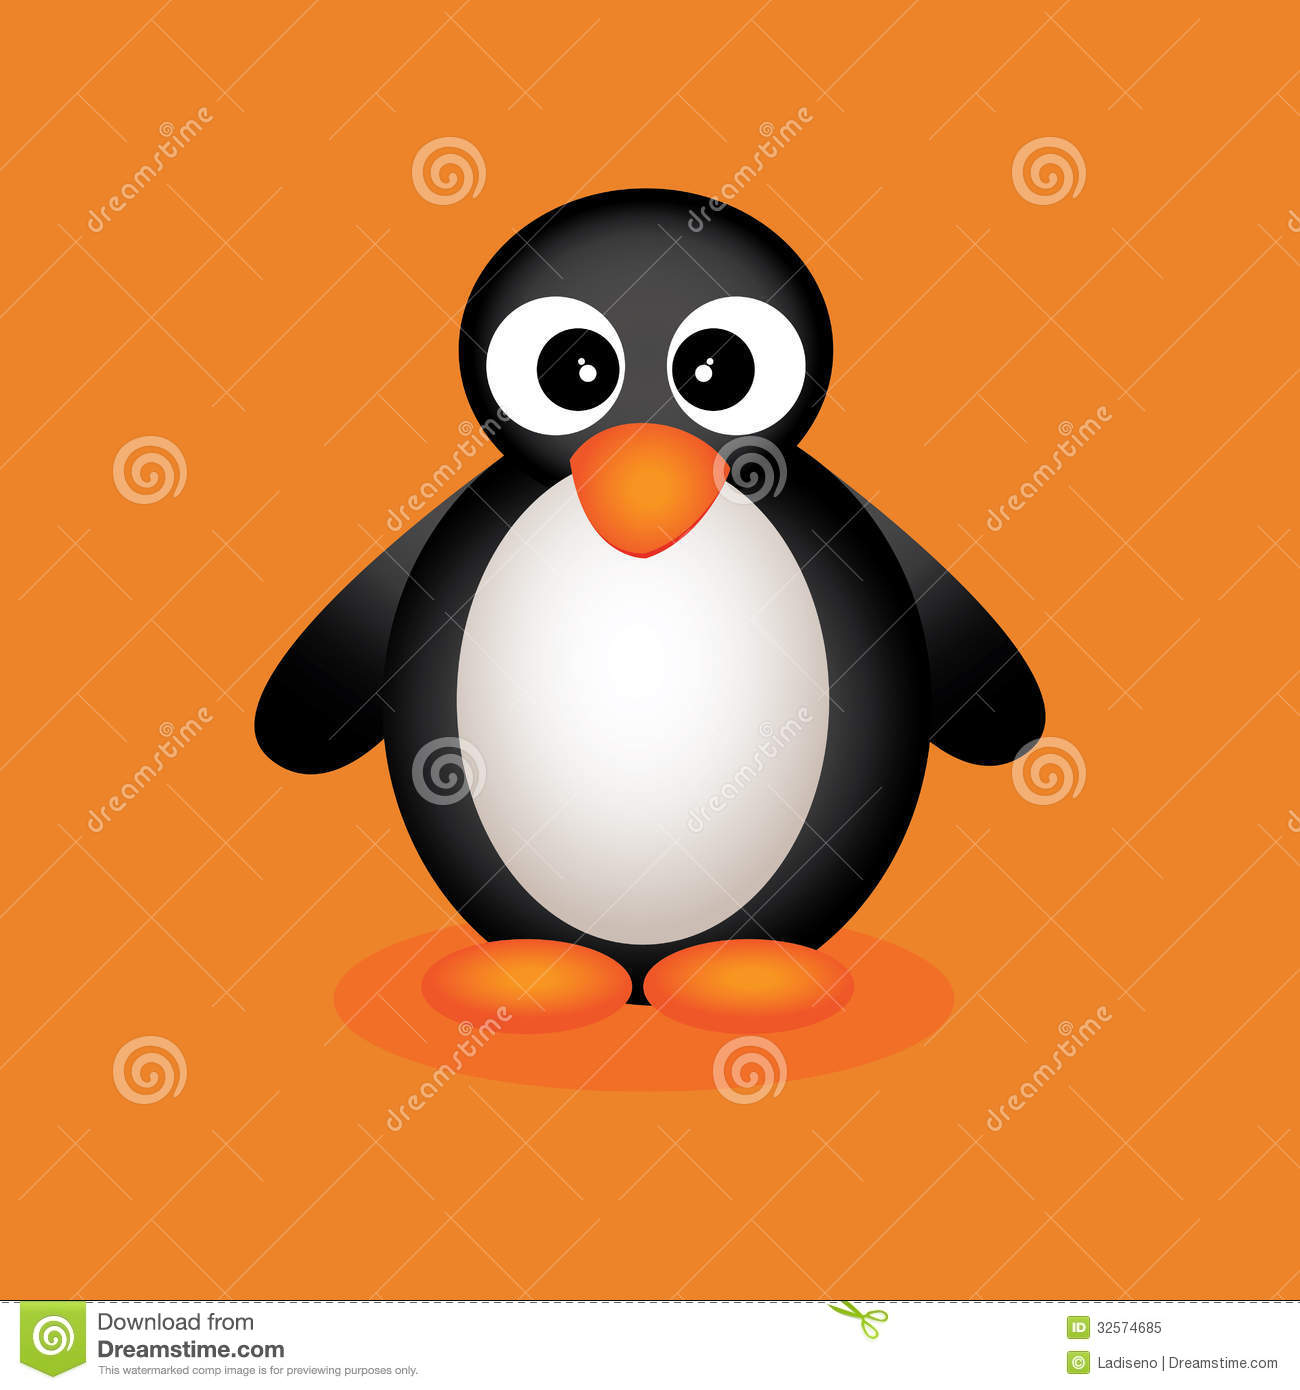 Cute Penguin On Orange Background With Shadow Effect Mr No Pr No 0 169